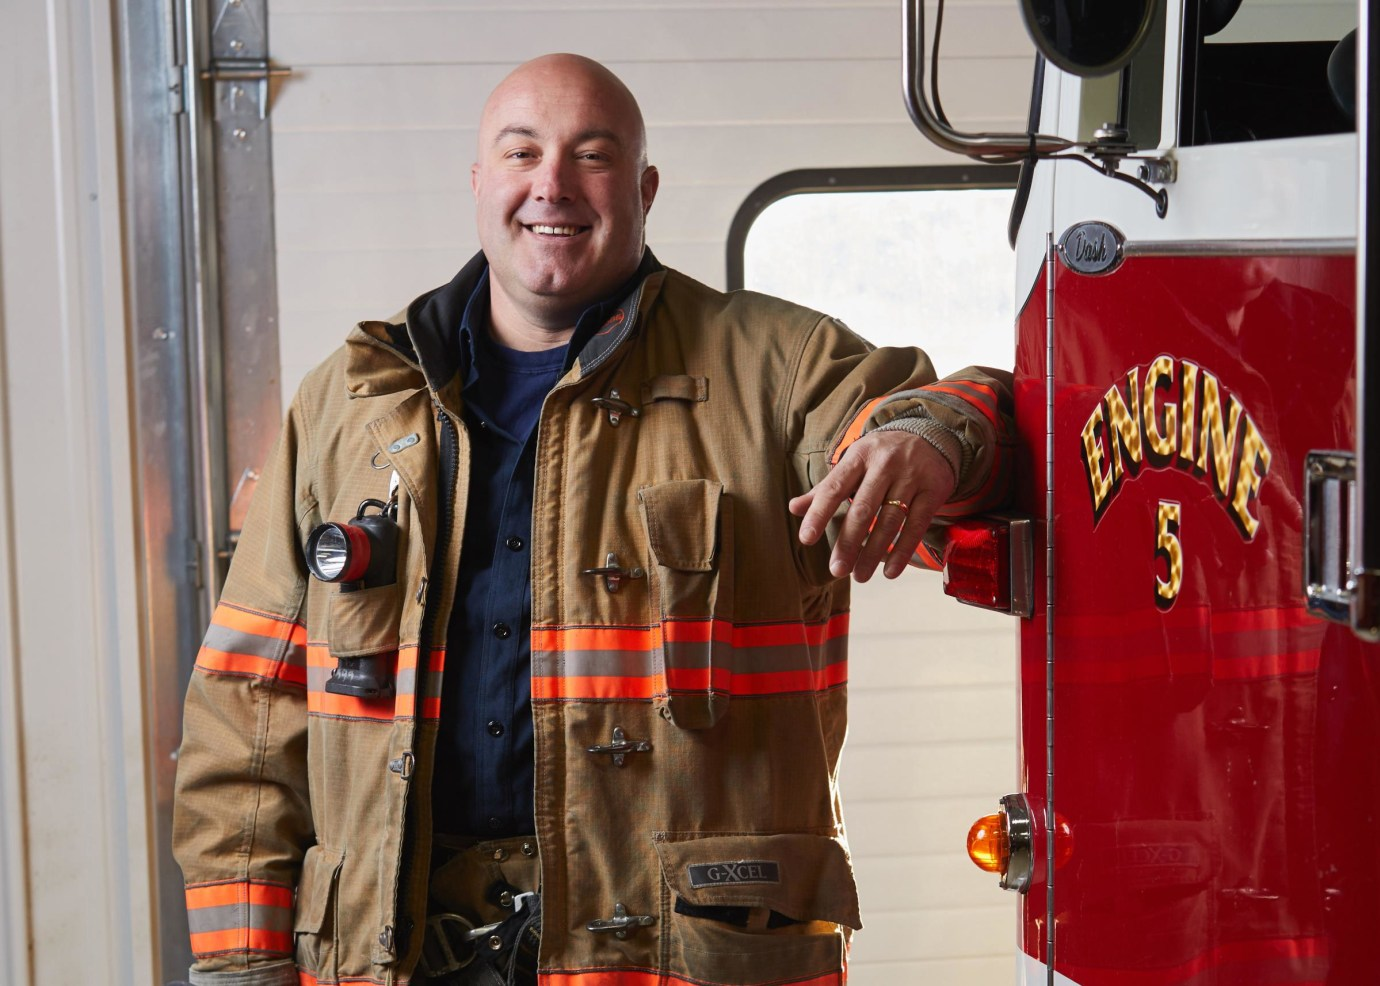 John, a firefighter and type 2 diabetic, enrolled in a research study to observe glucose levels in the brain relative to in the blood.